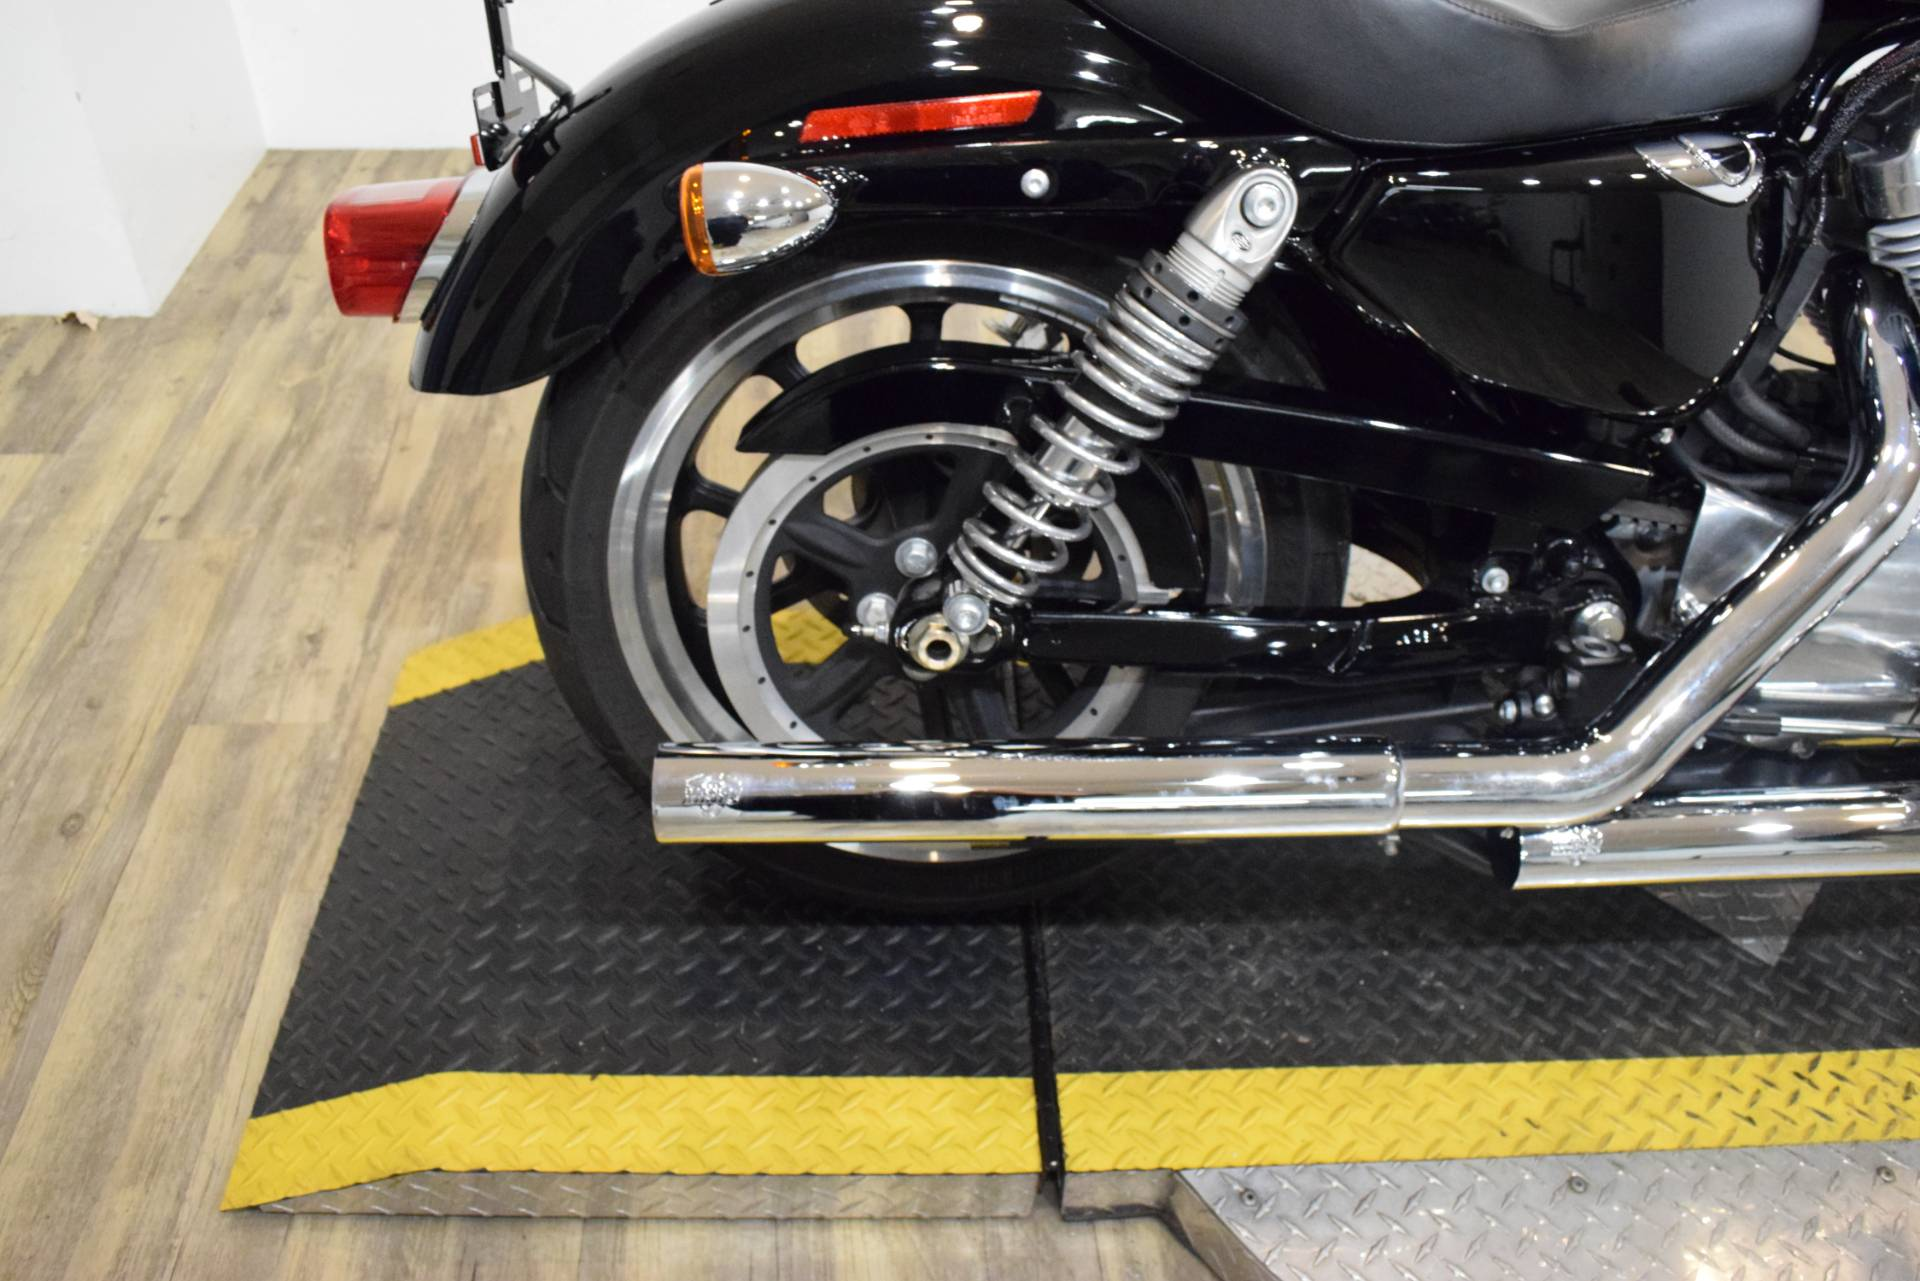 2016 Harley-Davidson XL883L in Wauconda, Illinois - Photo 9